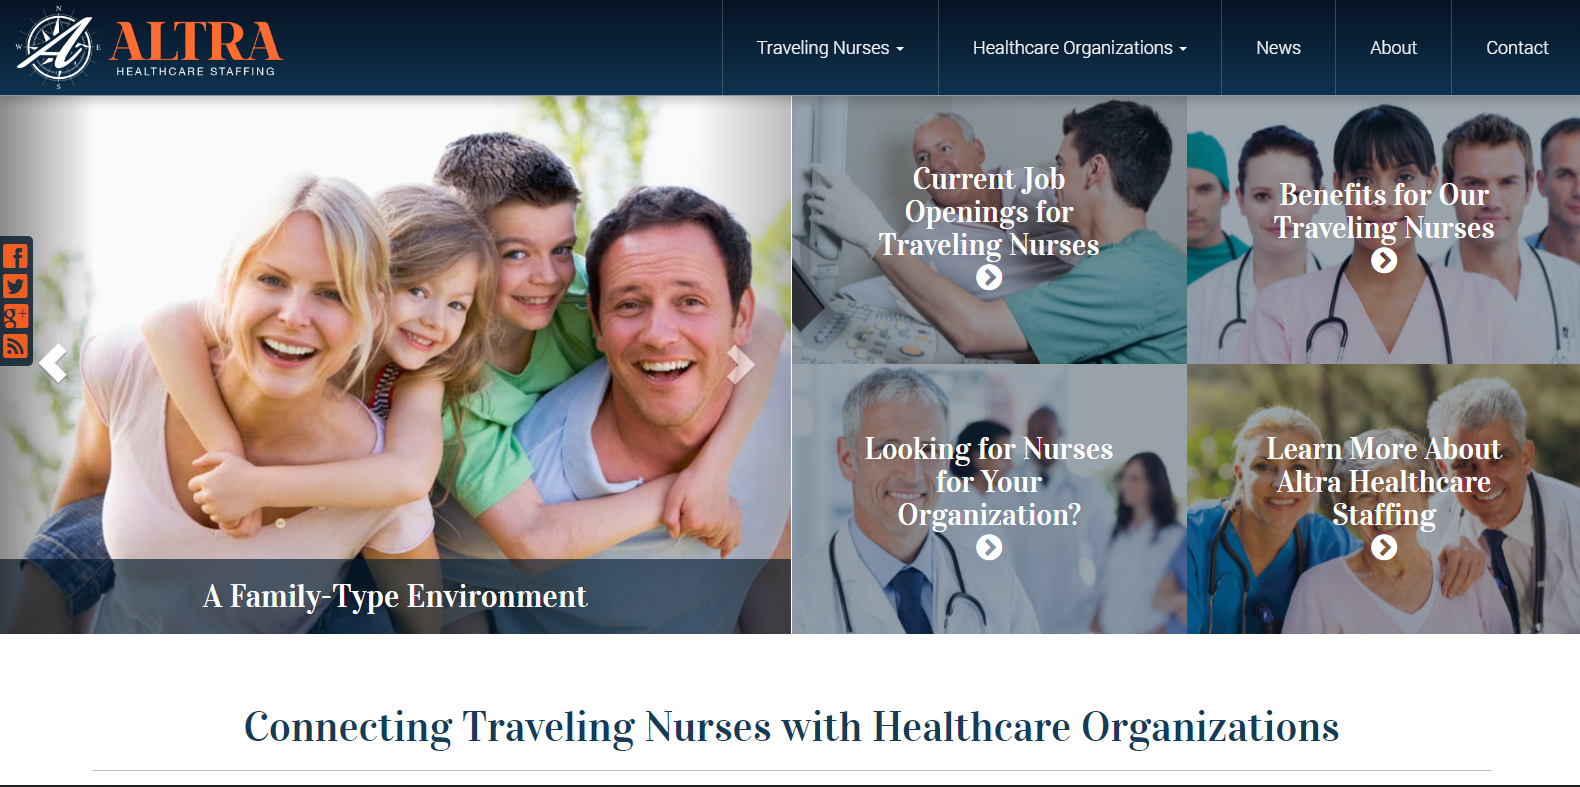 New Website Launched: Altra Healthcare Staffing